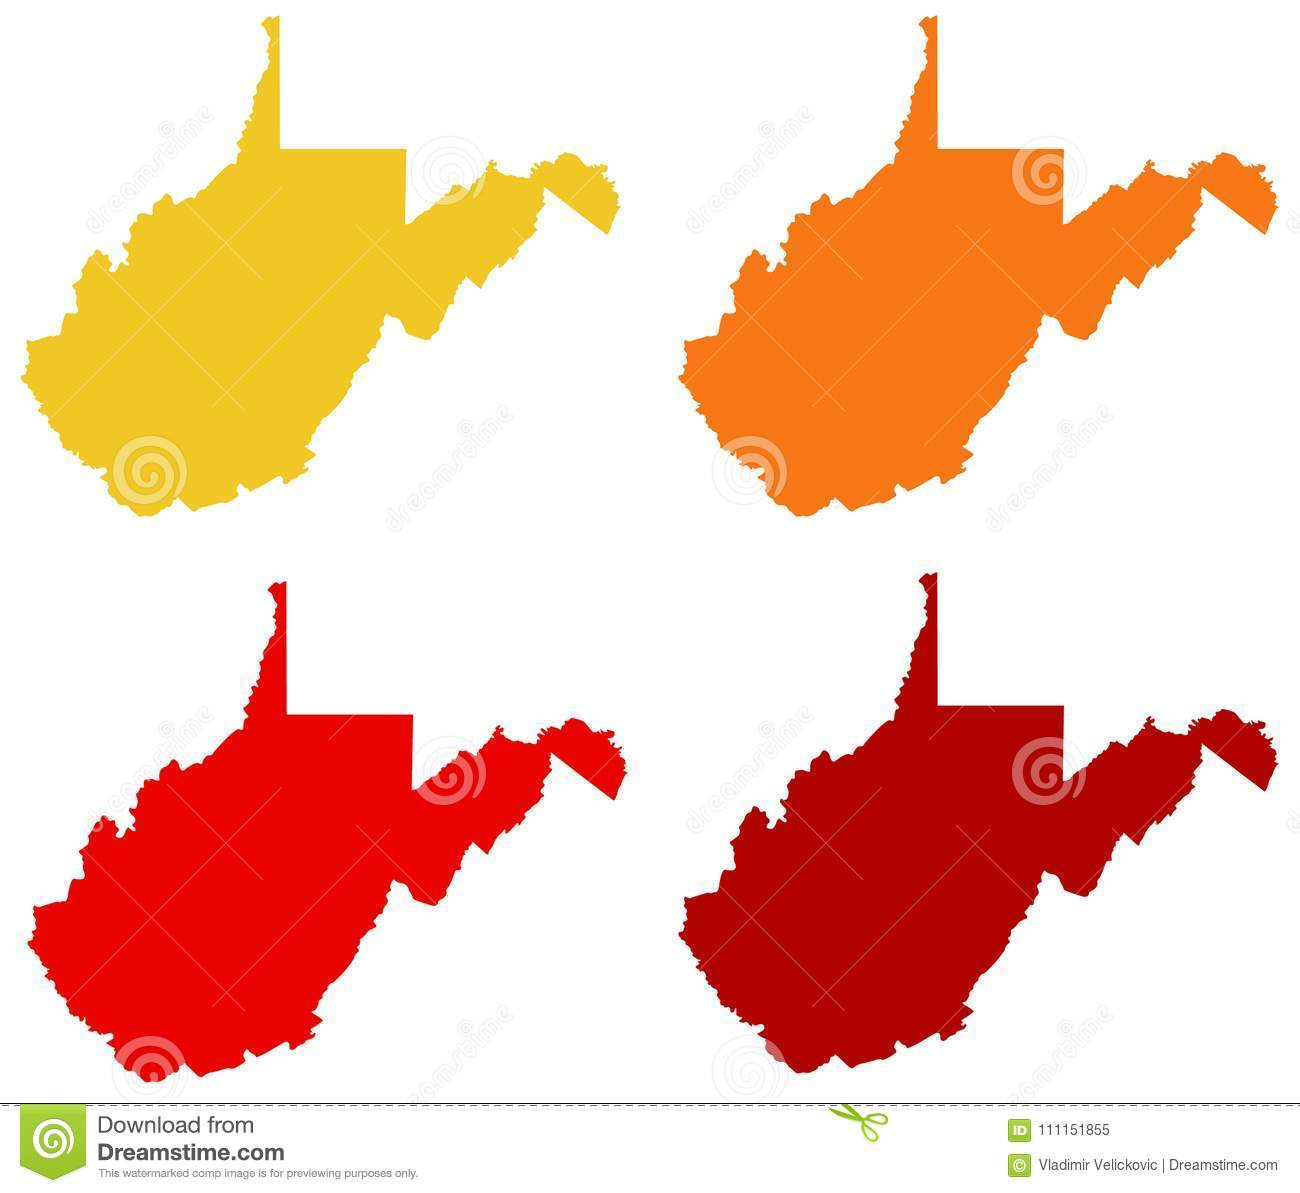 West Virginia Map - State In The Appalachian Region Of The Southern ...